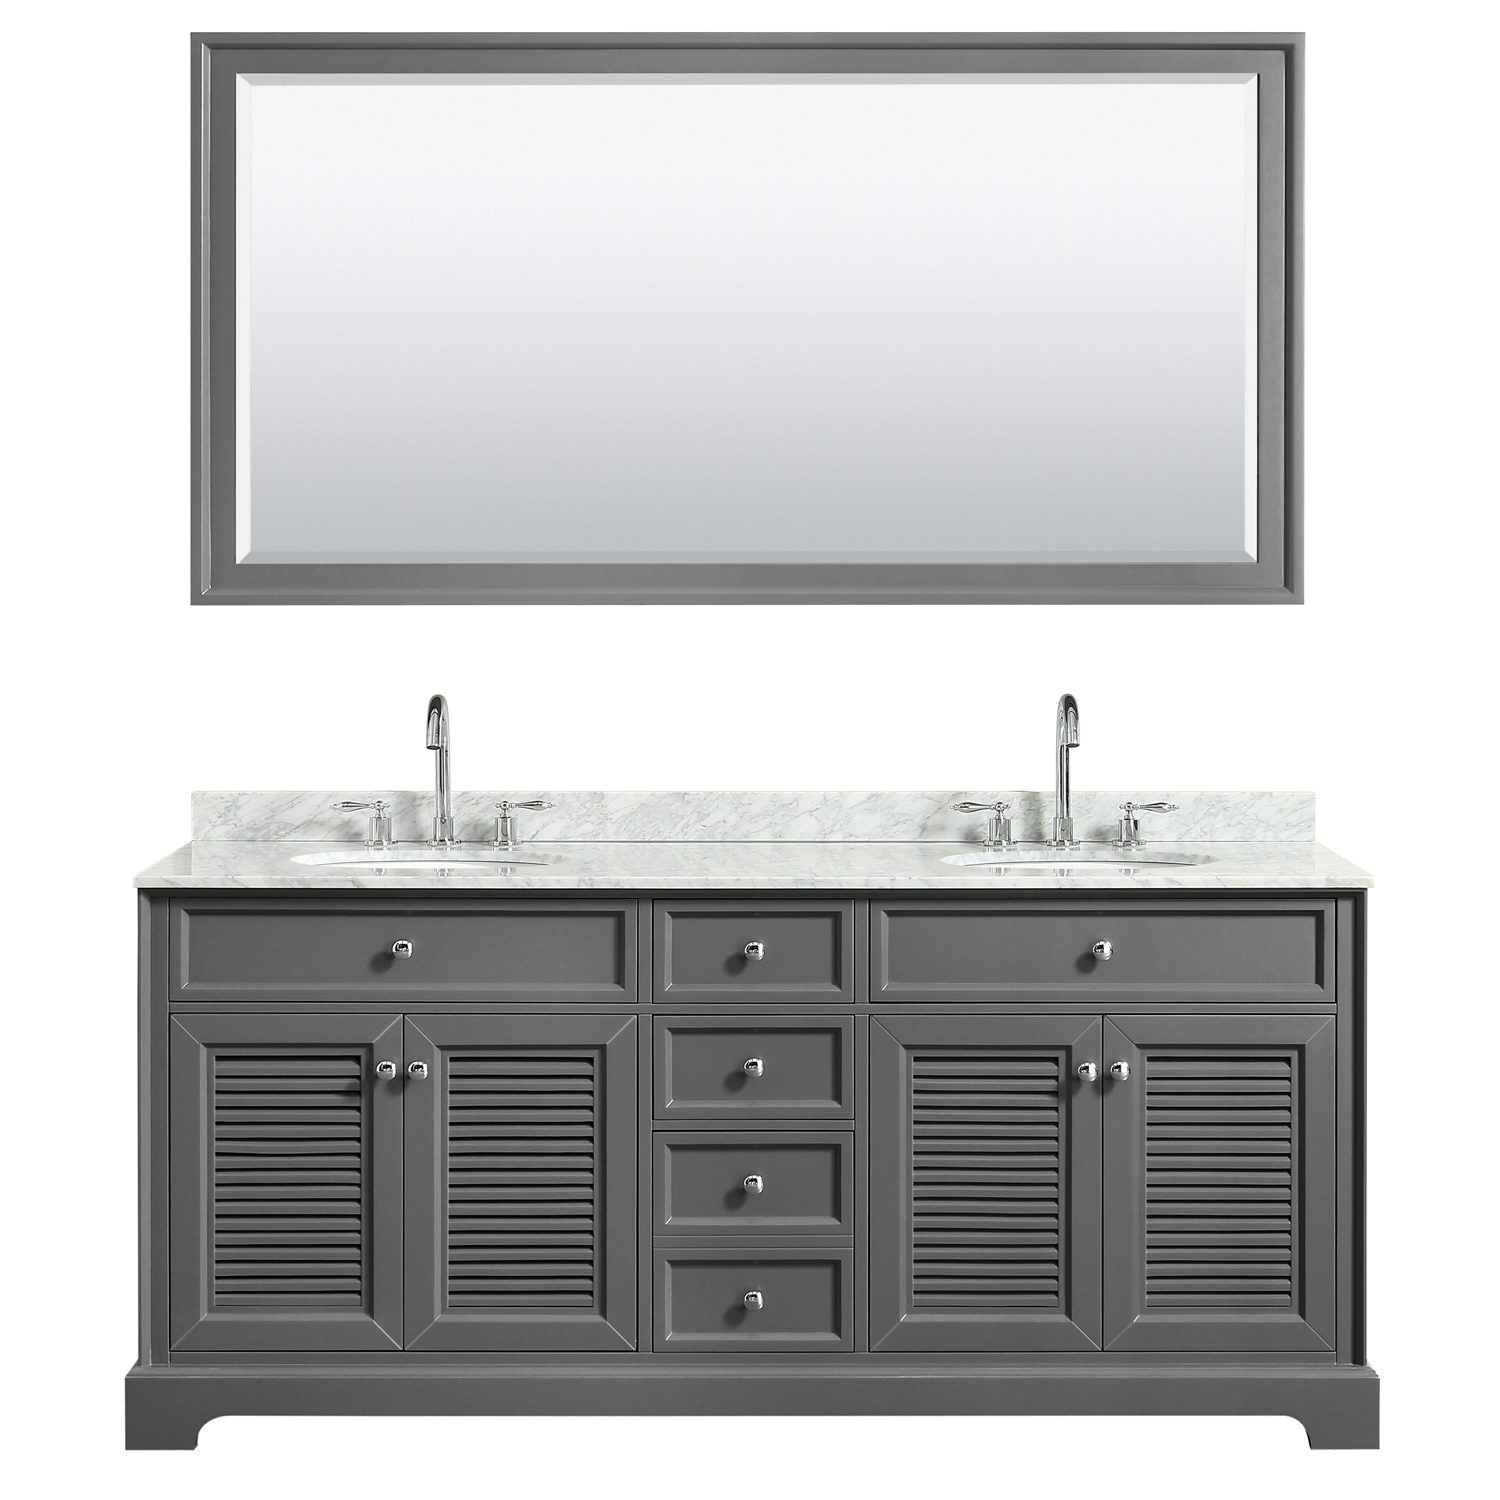 "72"" Double Bathroom Vanity in White Carrara Marble Countertop with Undermount Sinks, Medicine Cabinet, Mirror and Color Options"